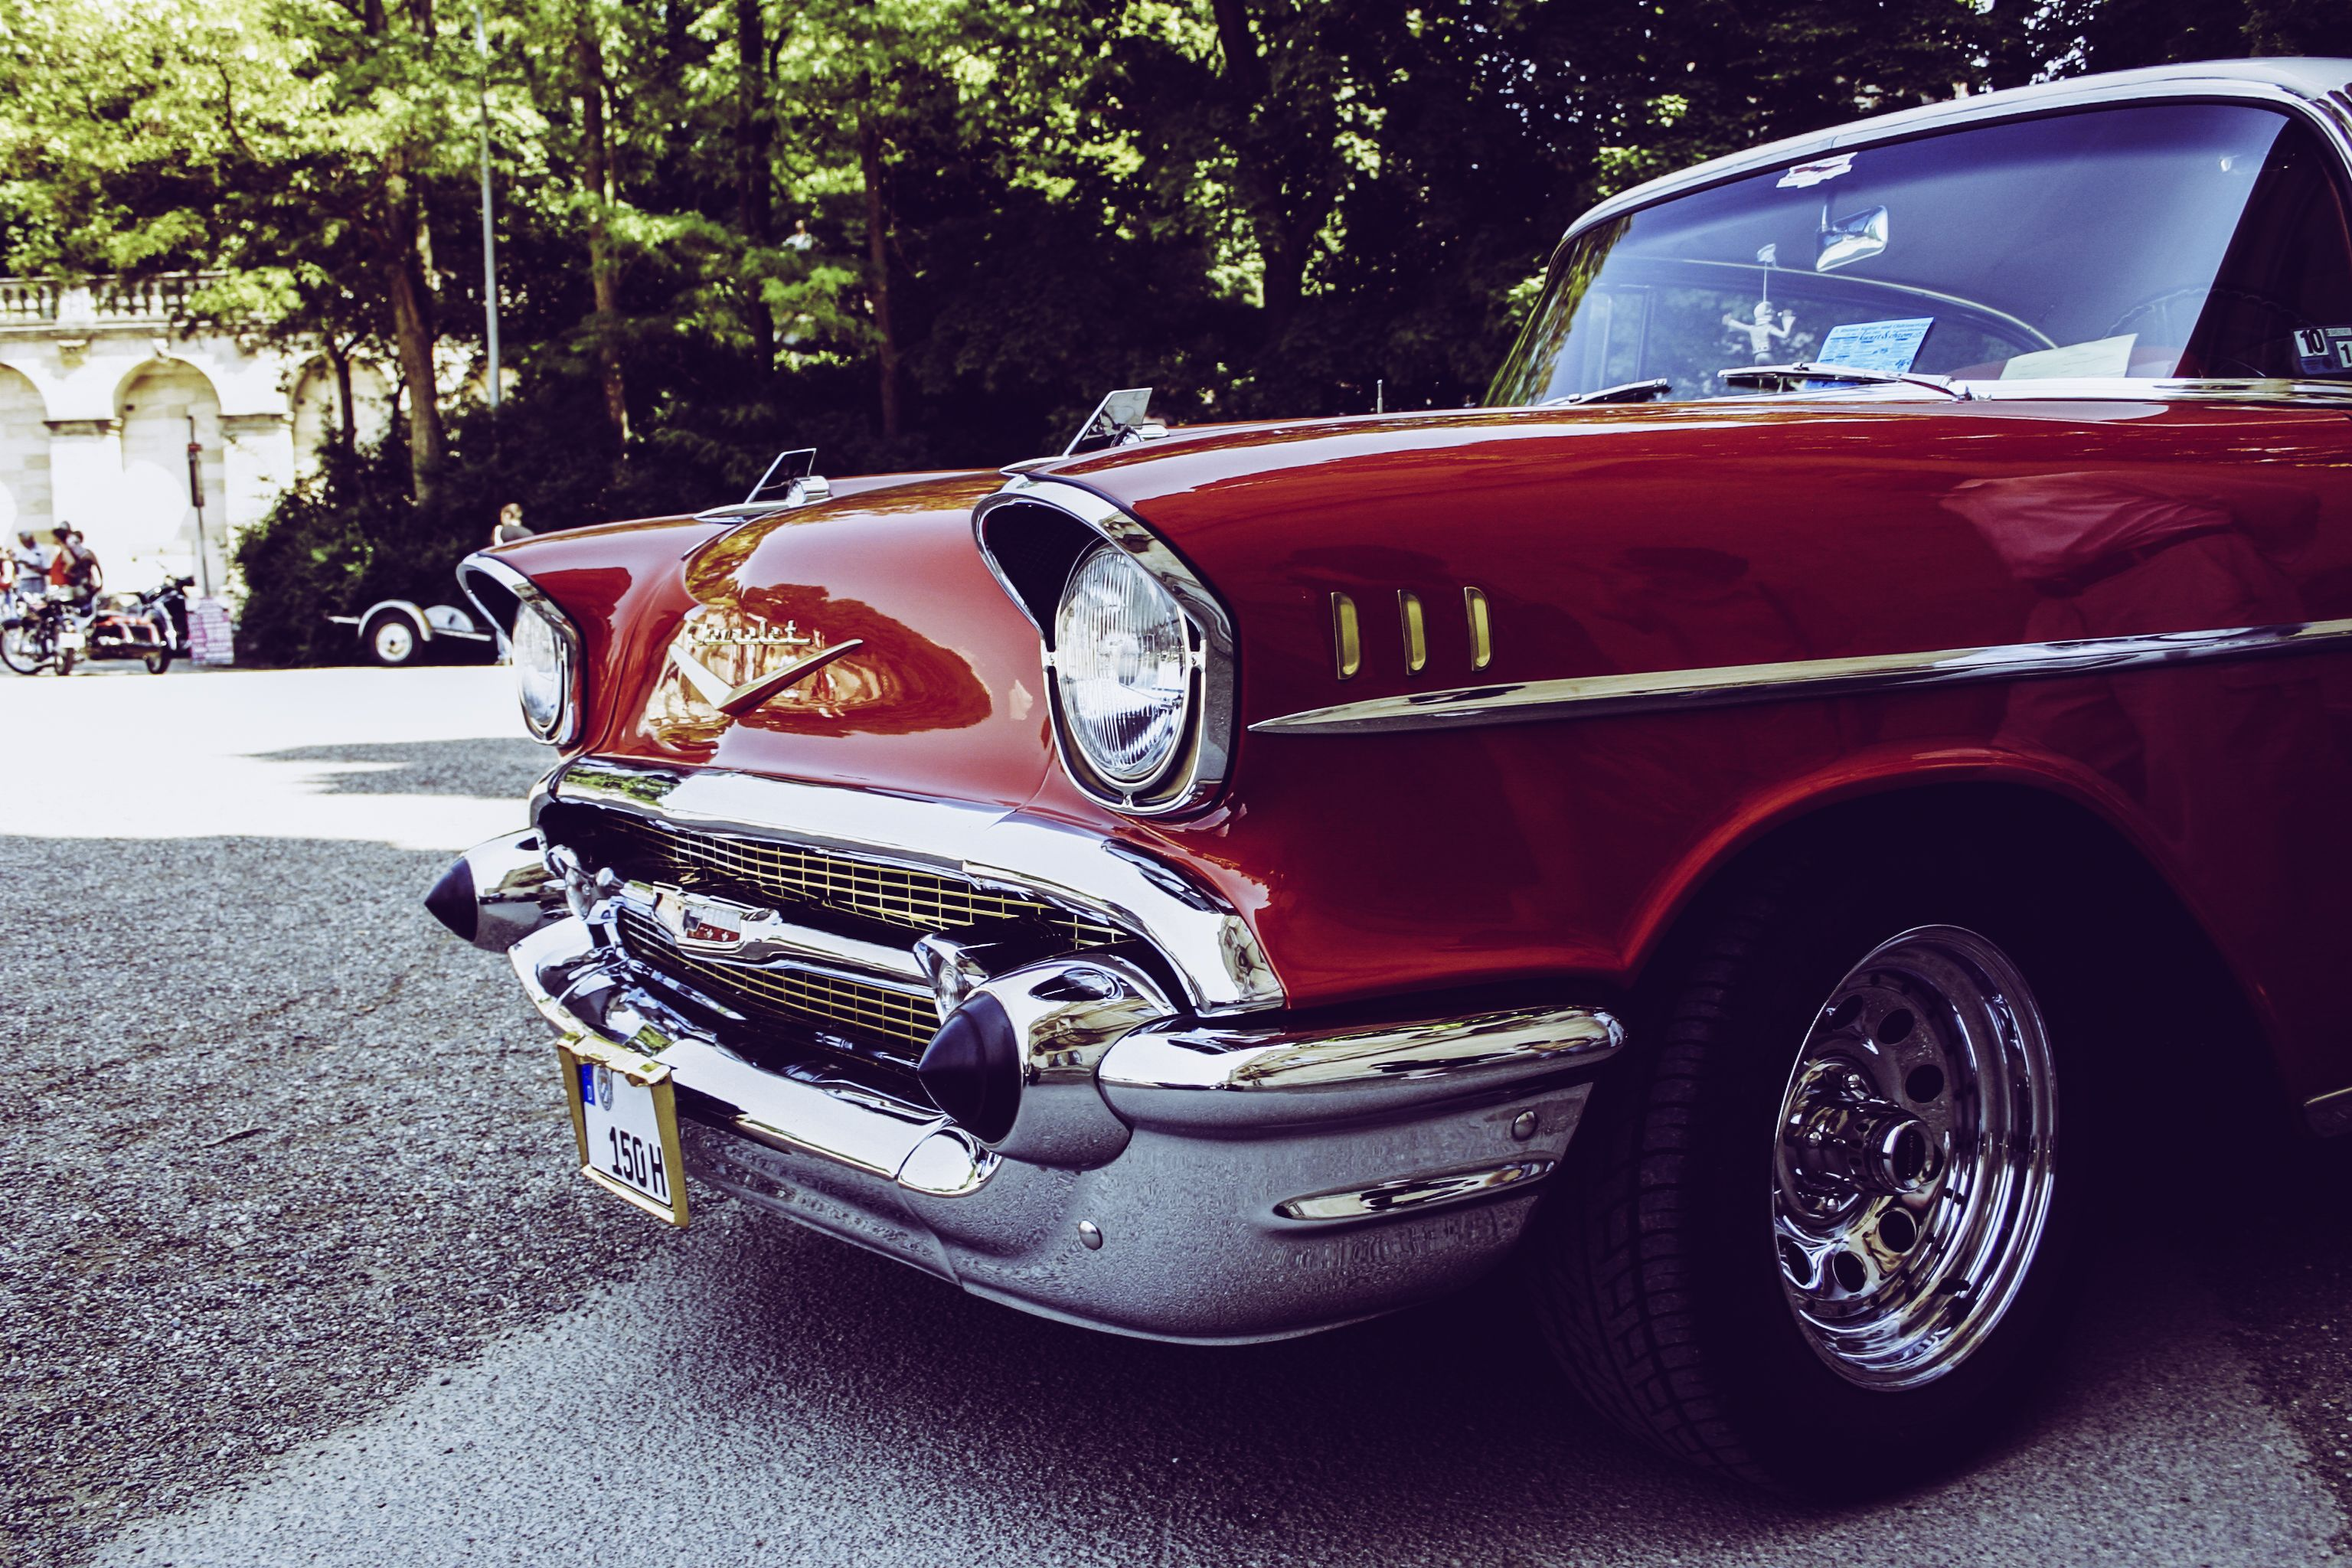 Pin by c ART on Classic | Pinterest | Car lights and Cars